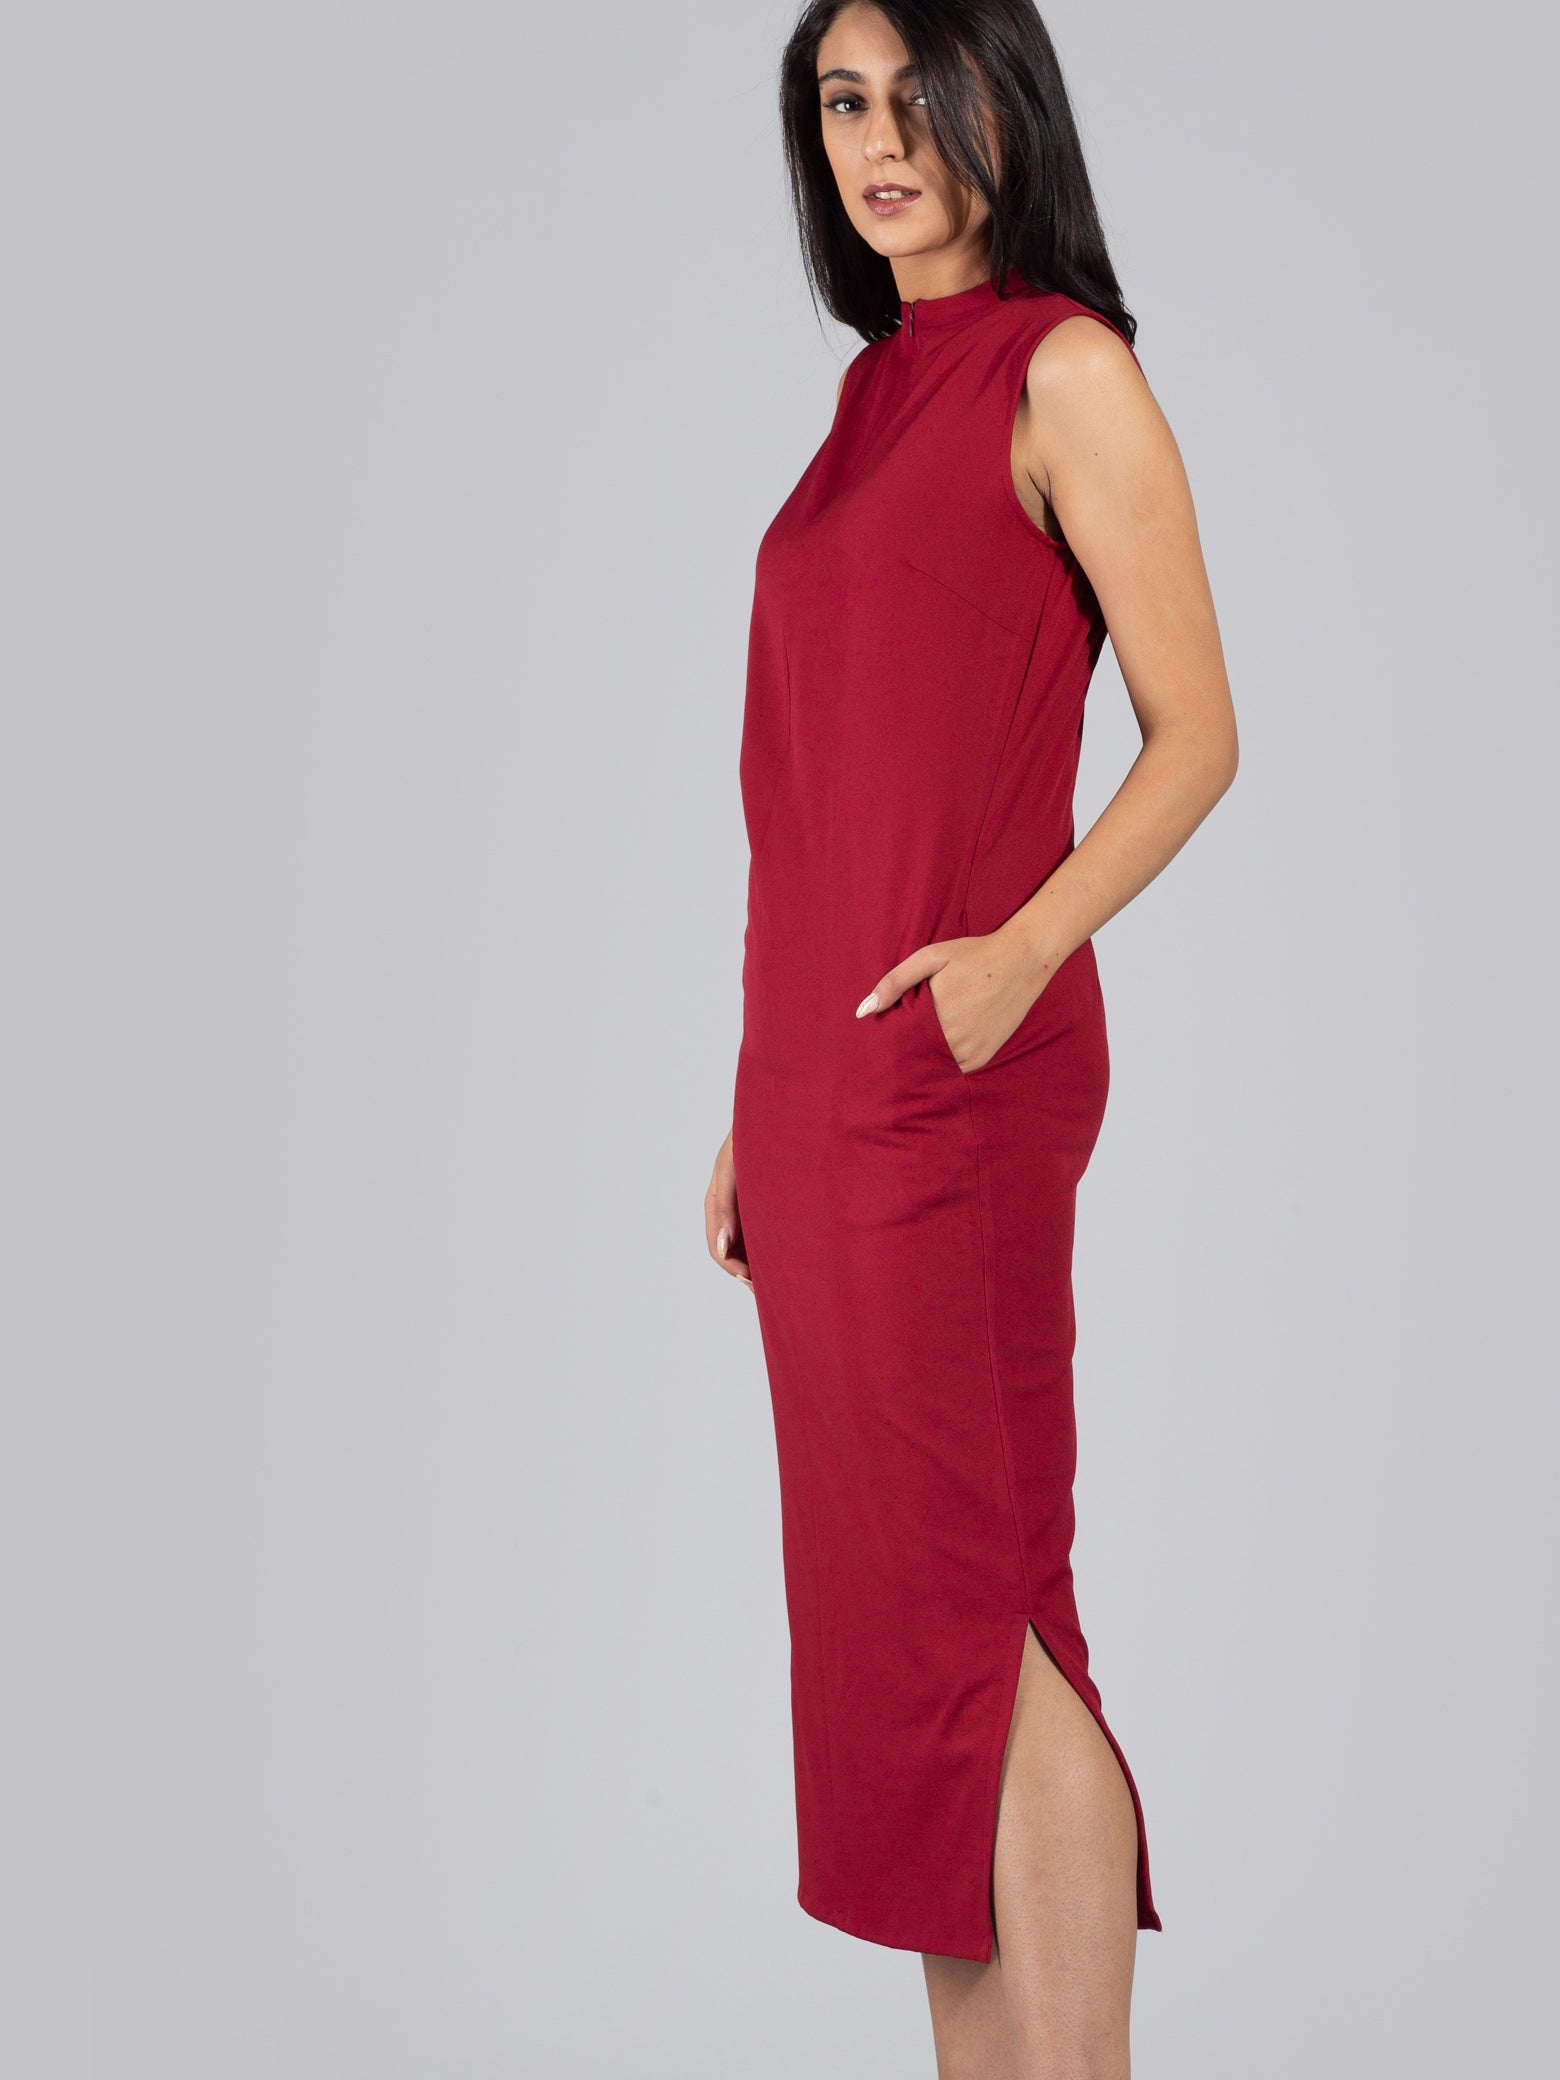 Front Zipper Two Way Neck Midi Dress - Carmine Red